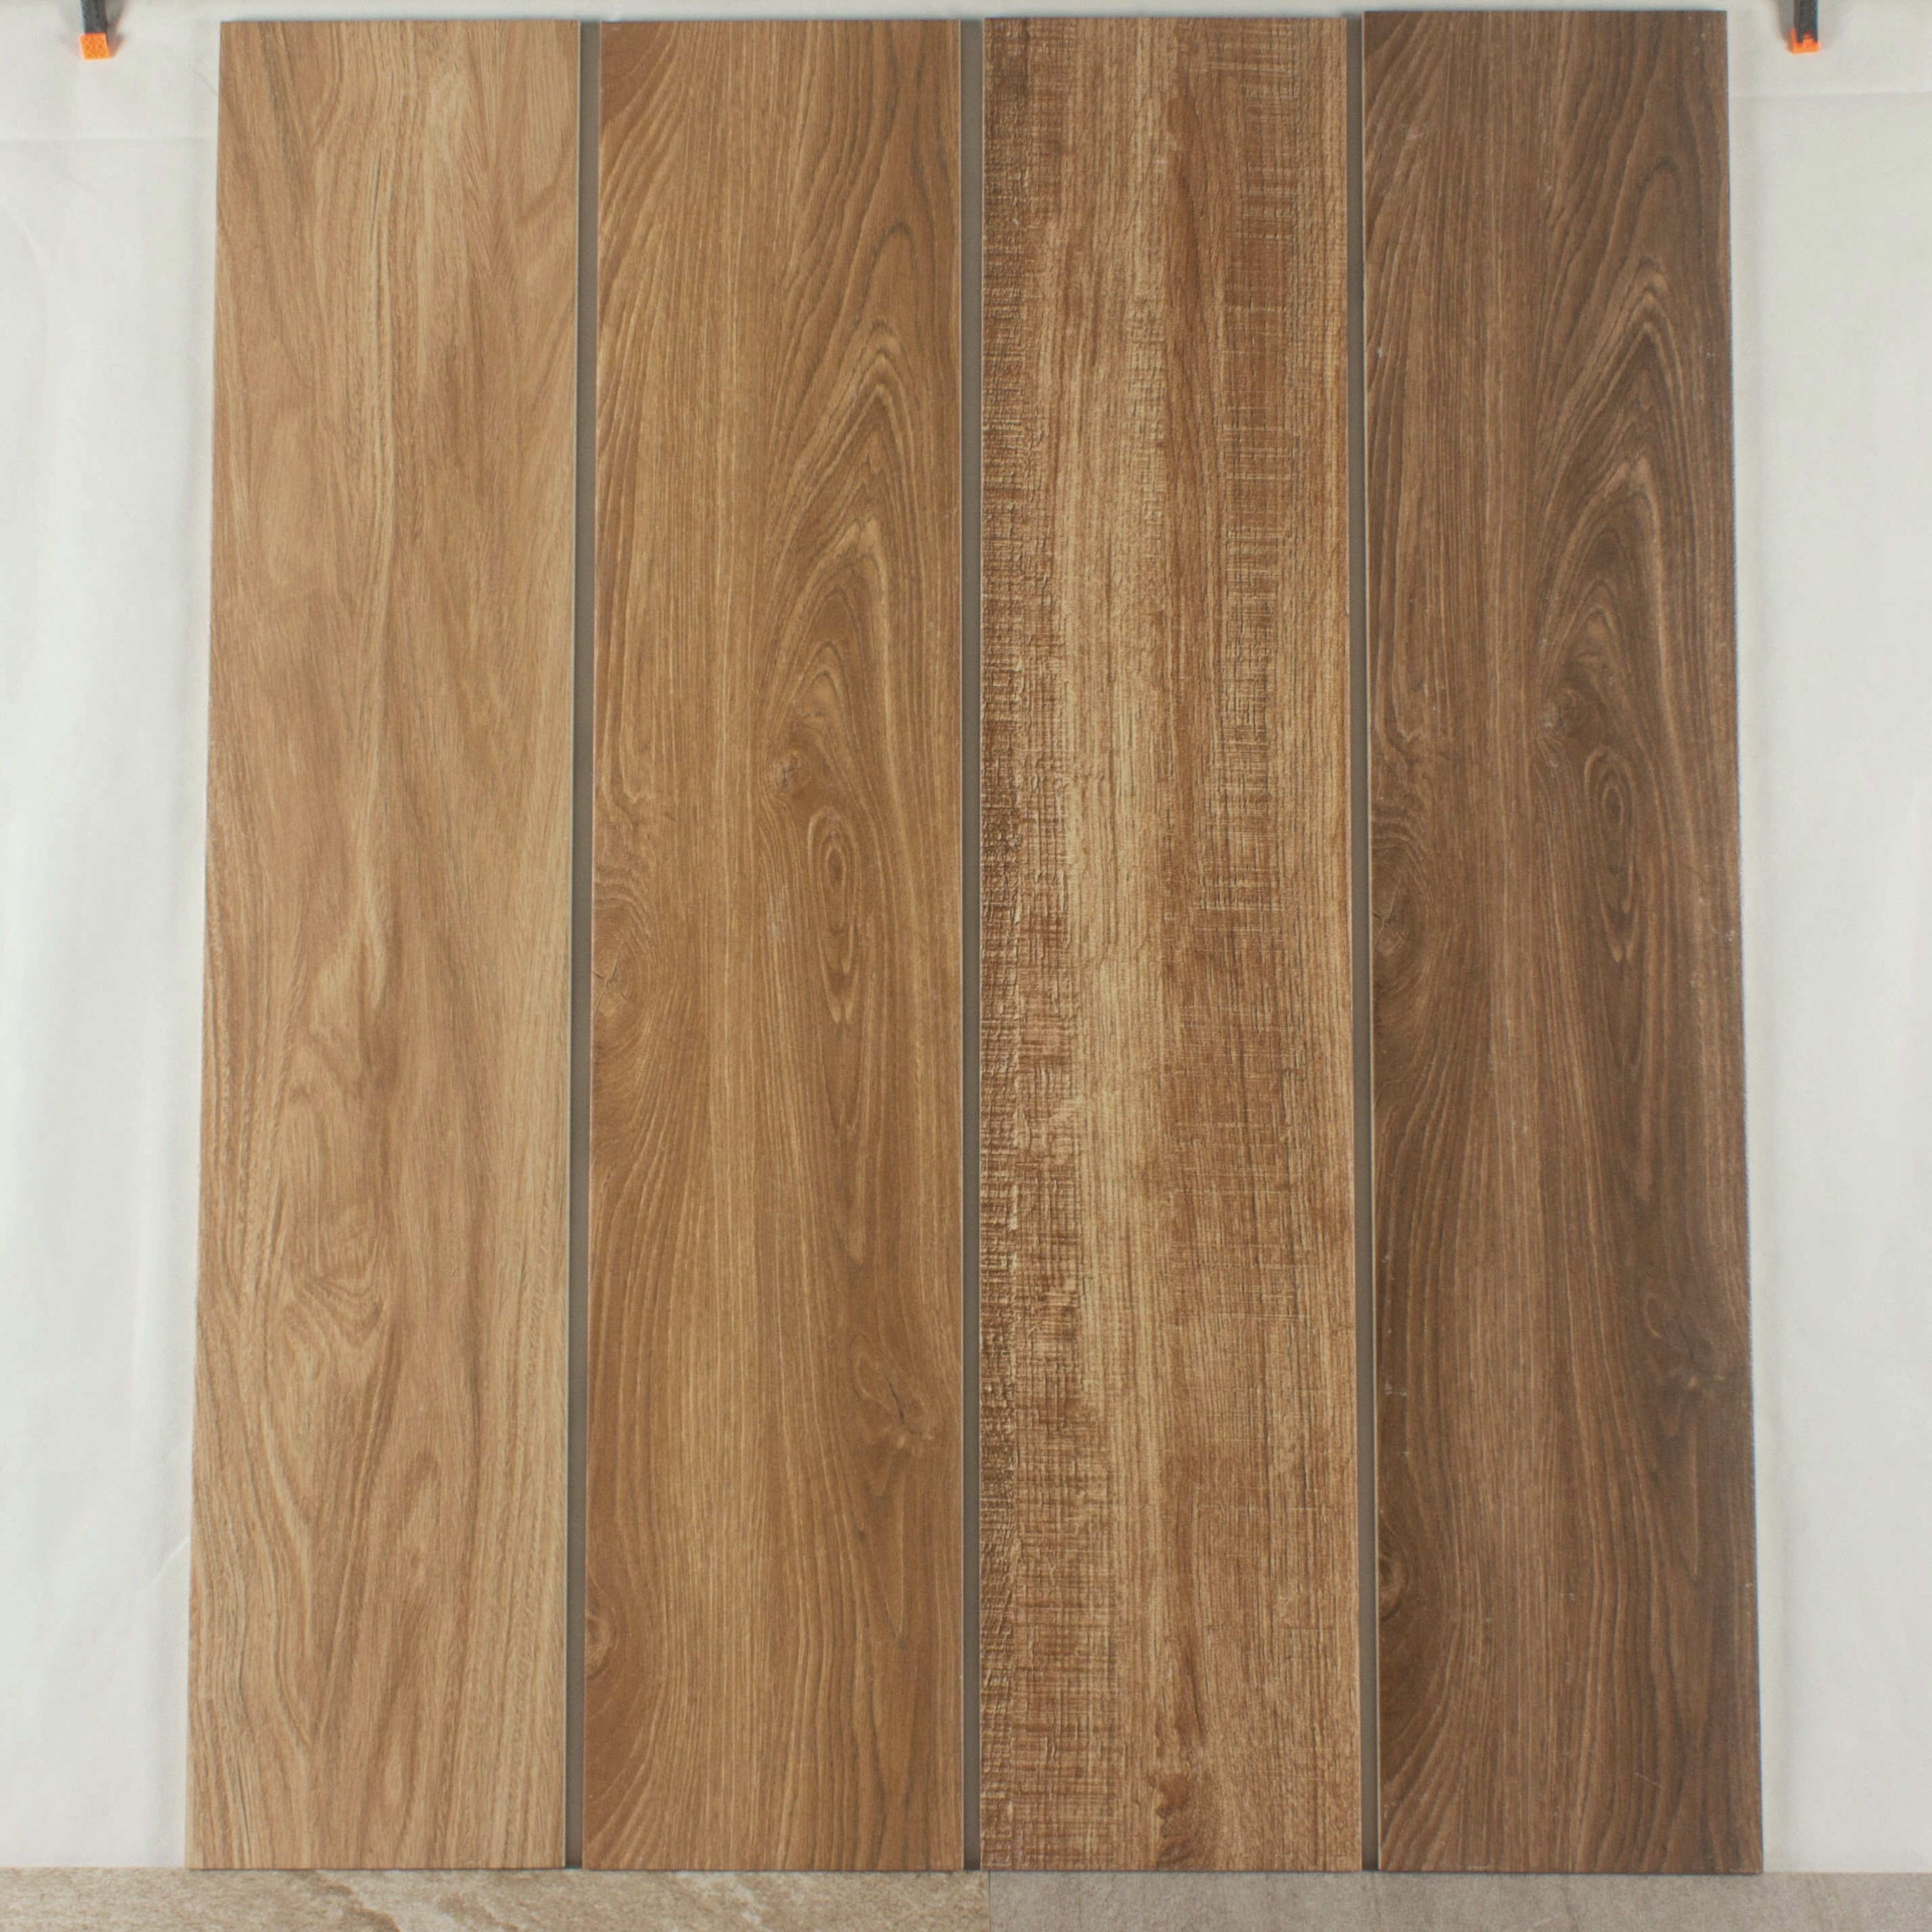 200x1000mm interlocking kajaria natural wooden floor porcelain tiles